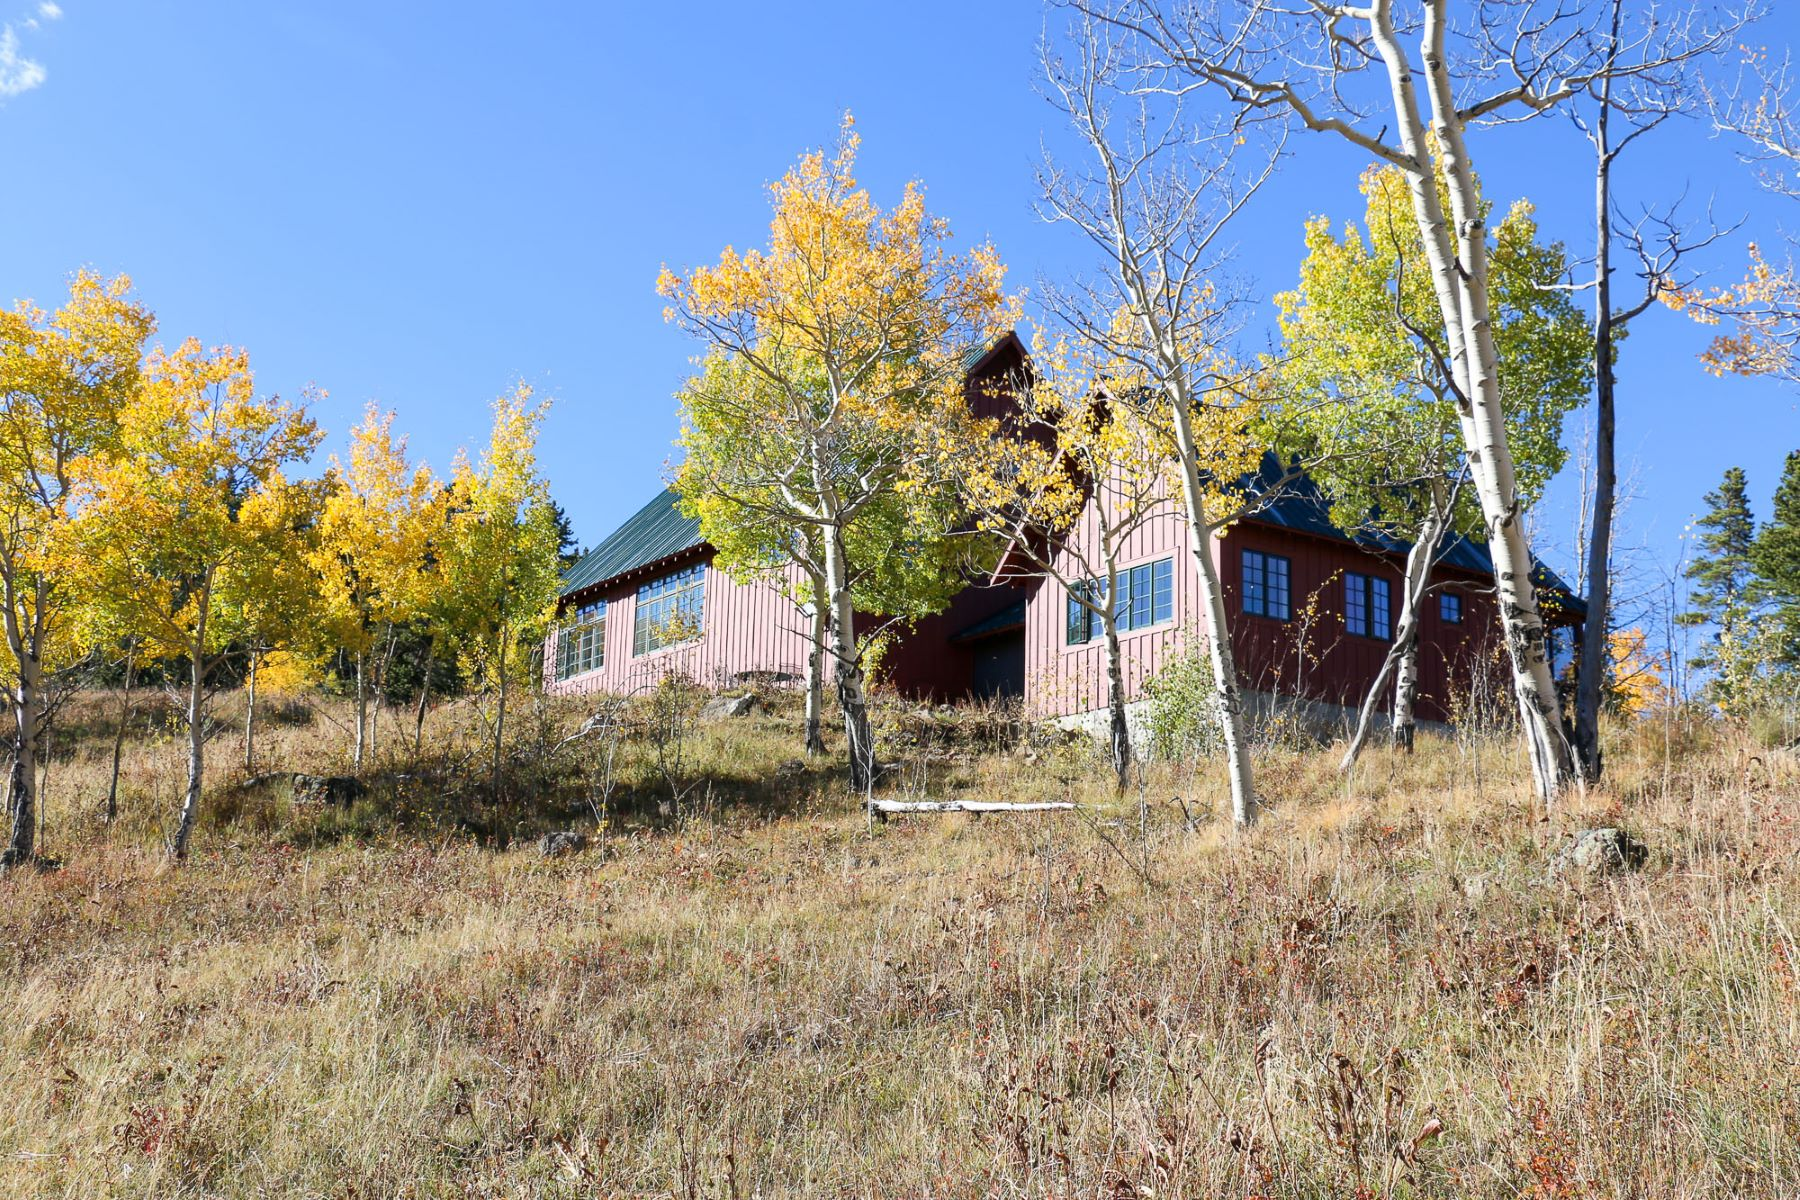 Single Family Home for Sale at Retreat on Red Mountain 475 Oversteeg Gulch Red Mountain Ranch Crested Butte, Colorado, 81224 United States